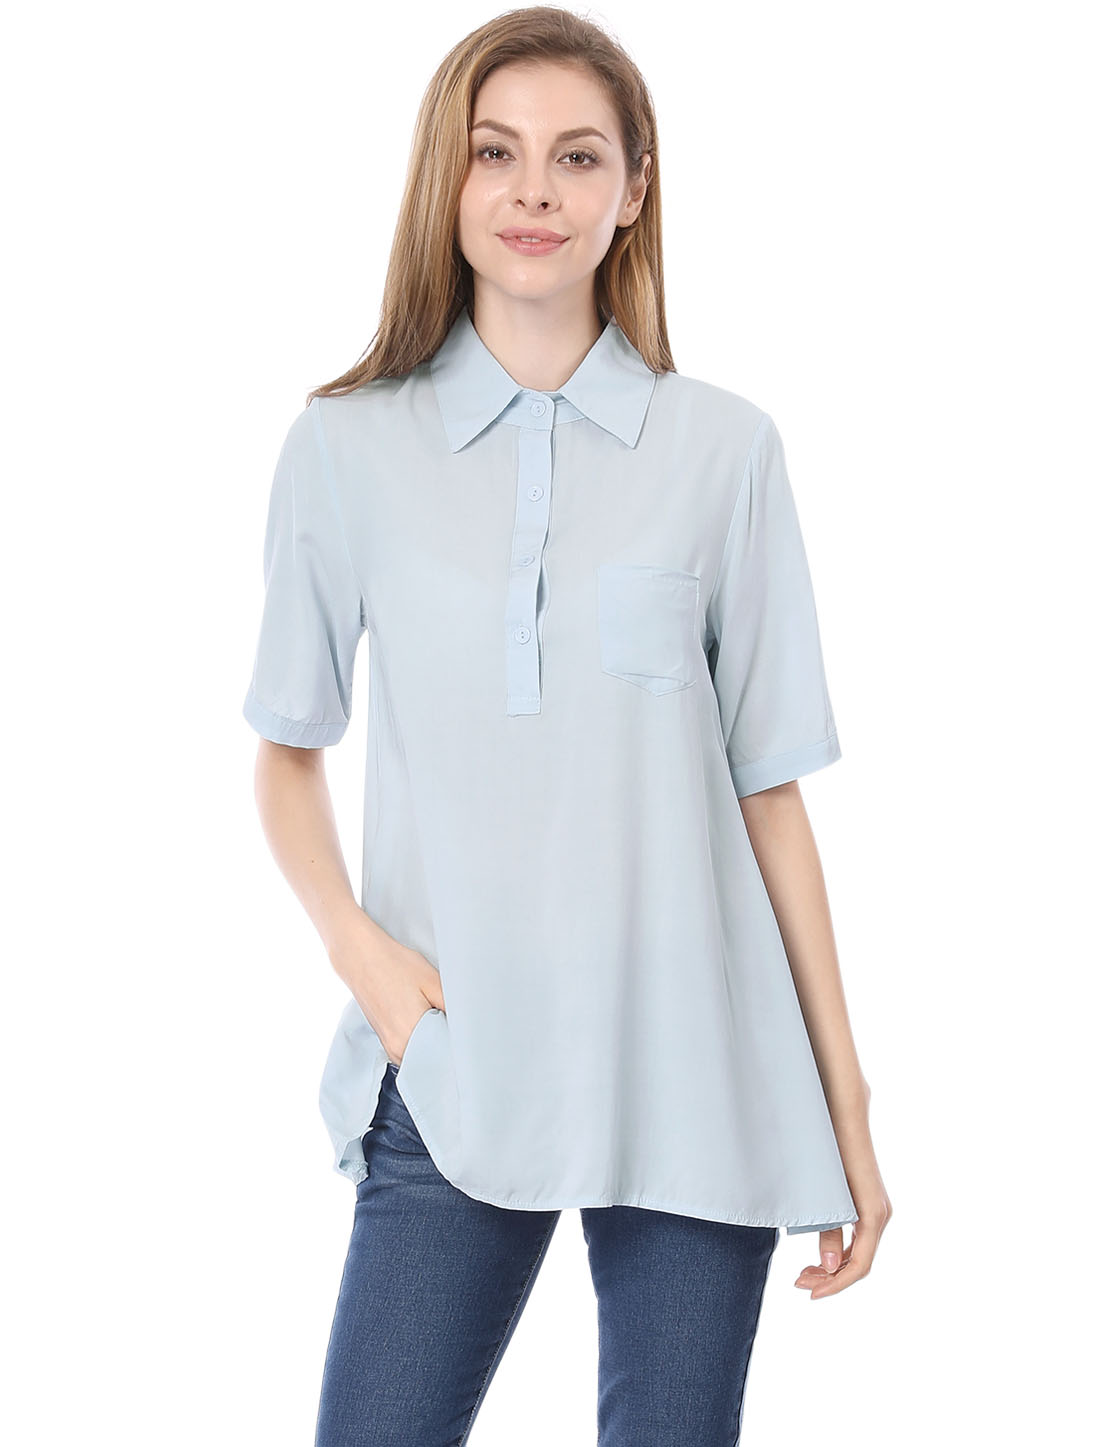 Women Casual Soft 1/2 Placket Short Sleeves Loose Top Shirt Light Blue XS